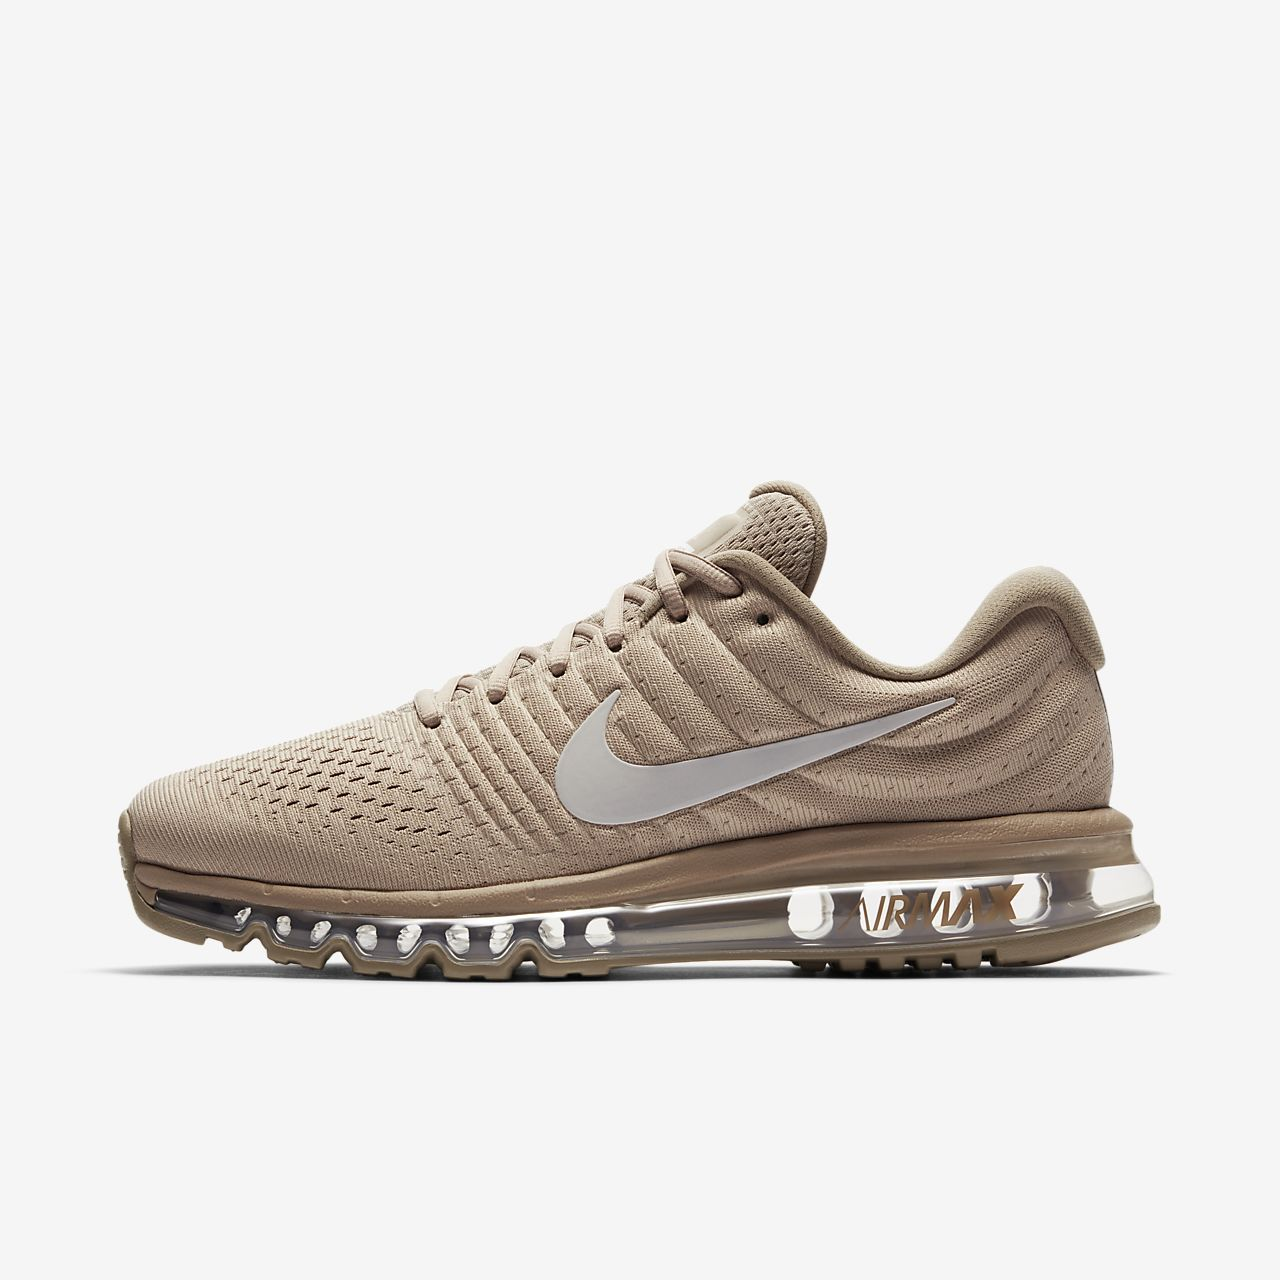 5e7a81f8d3c ... new style chaussure nike air max 2017 pour homme 8b888 78f47